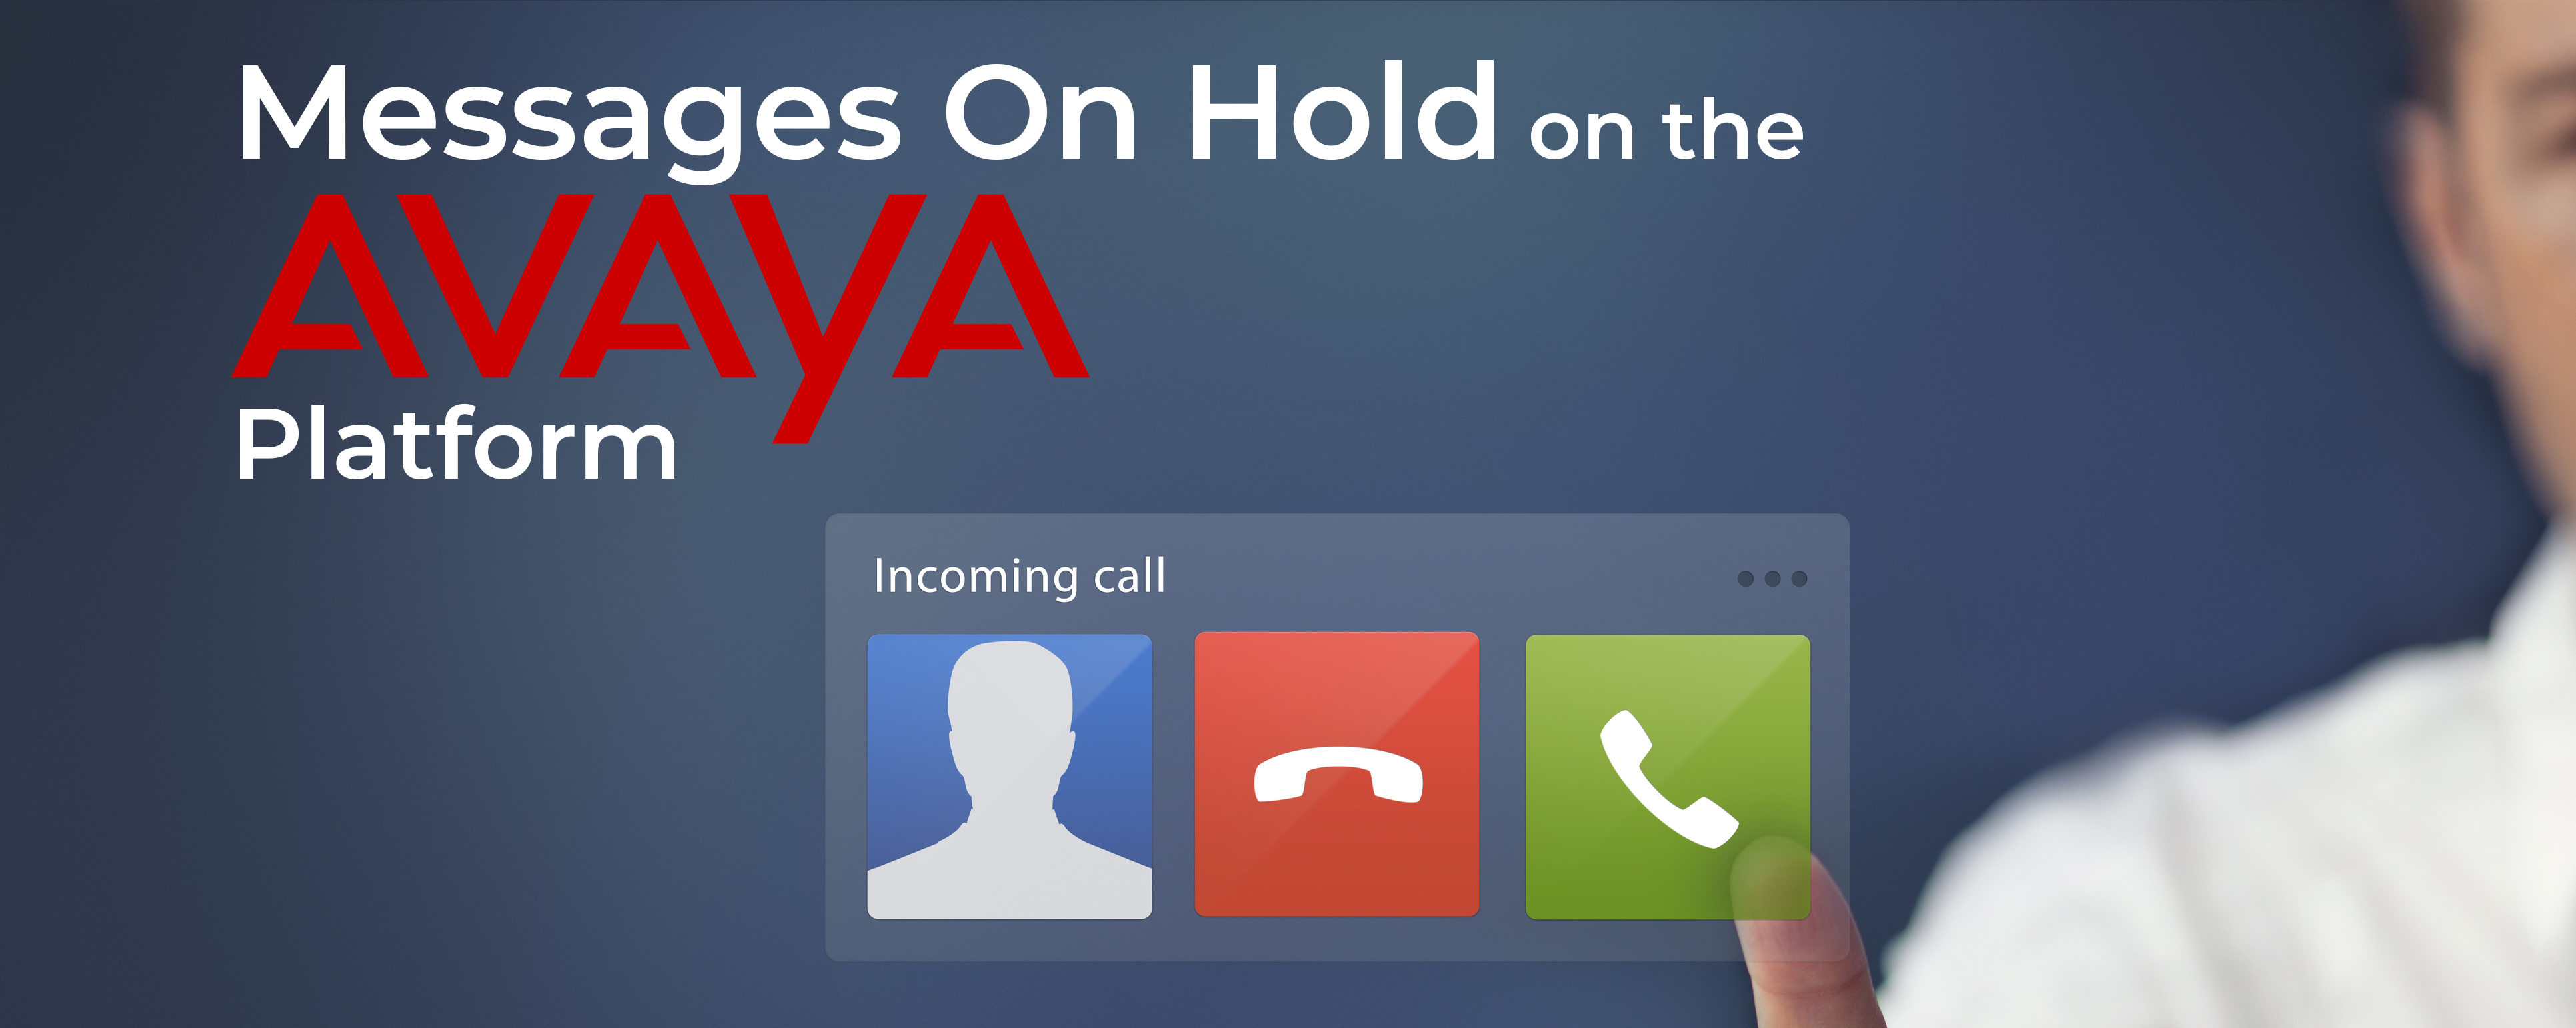 Messages-On-Hold-on-Avaya-Streaming-URL